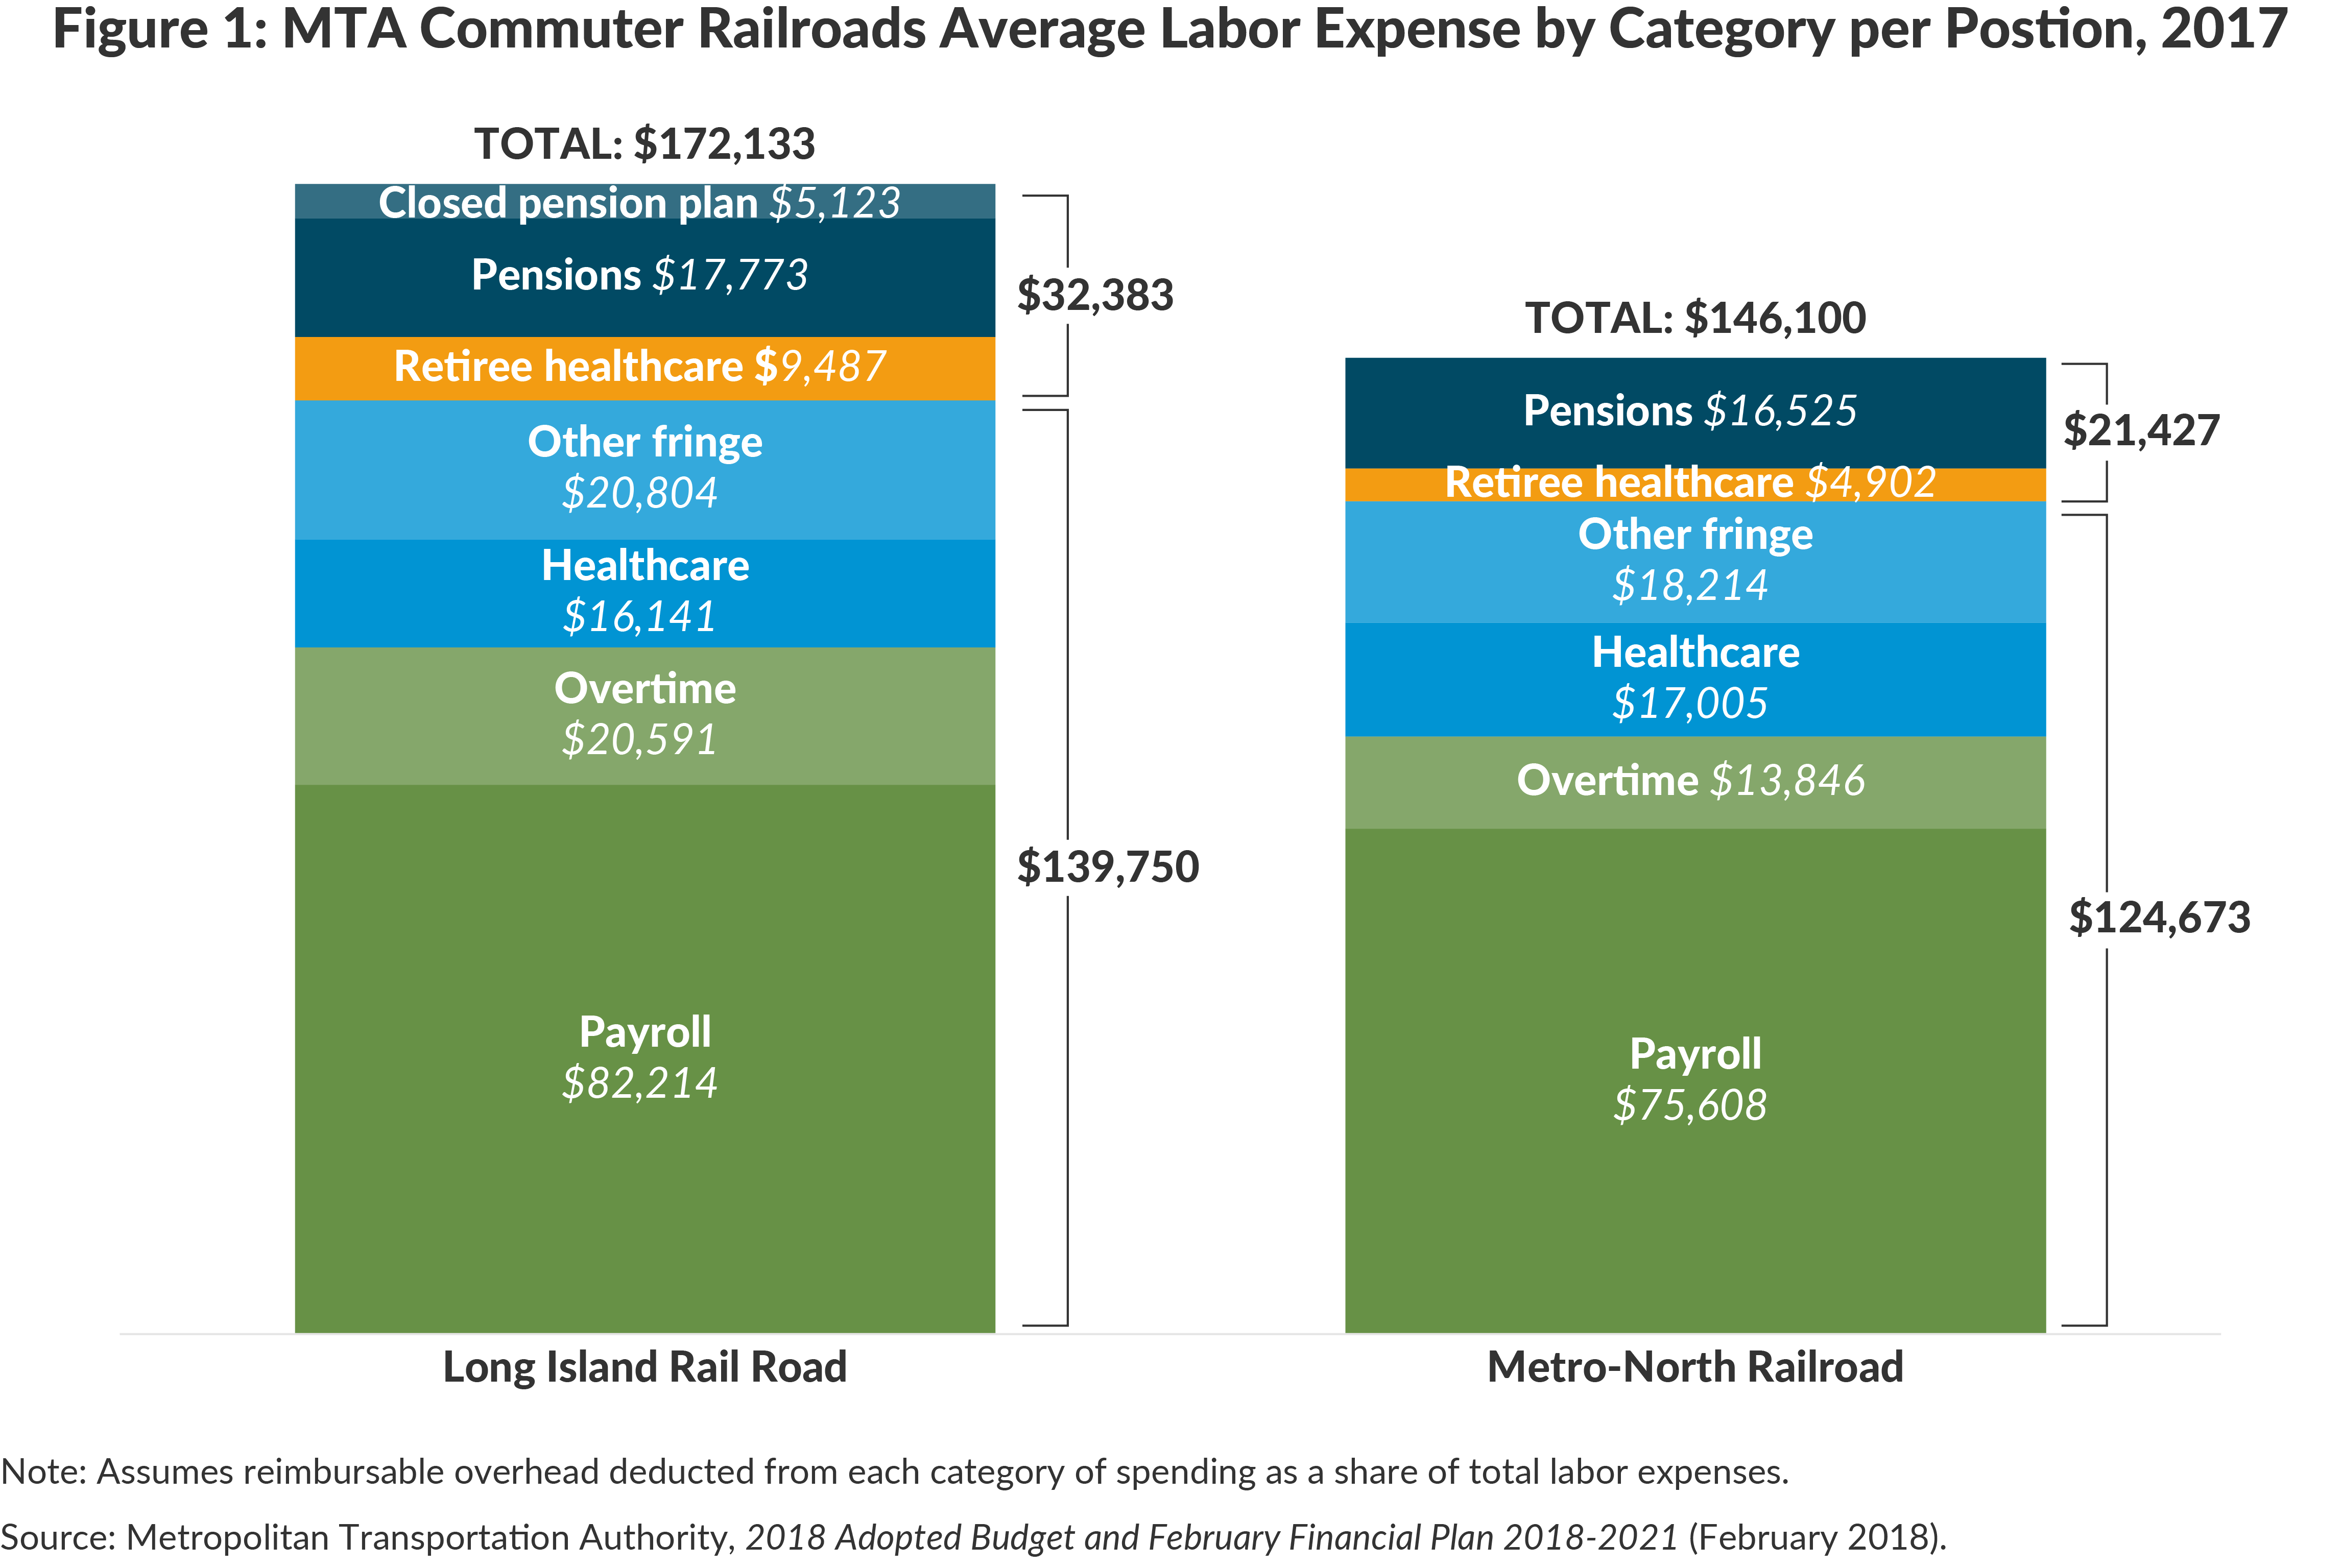 Figure 1: MTA Commuter Railroads Average Labor Expense by Category per Postion, 2017